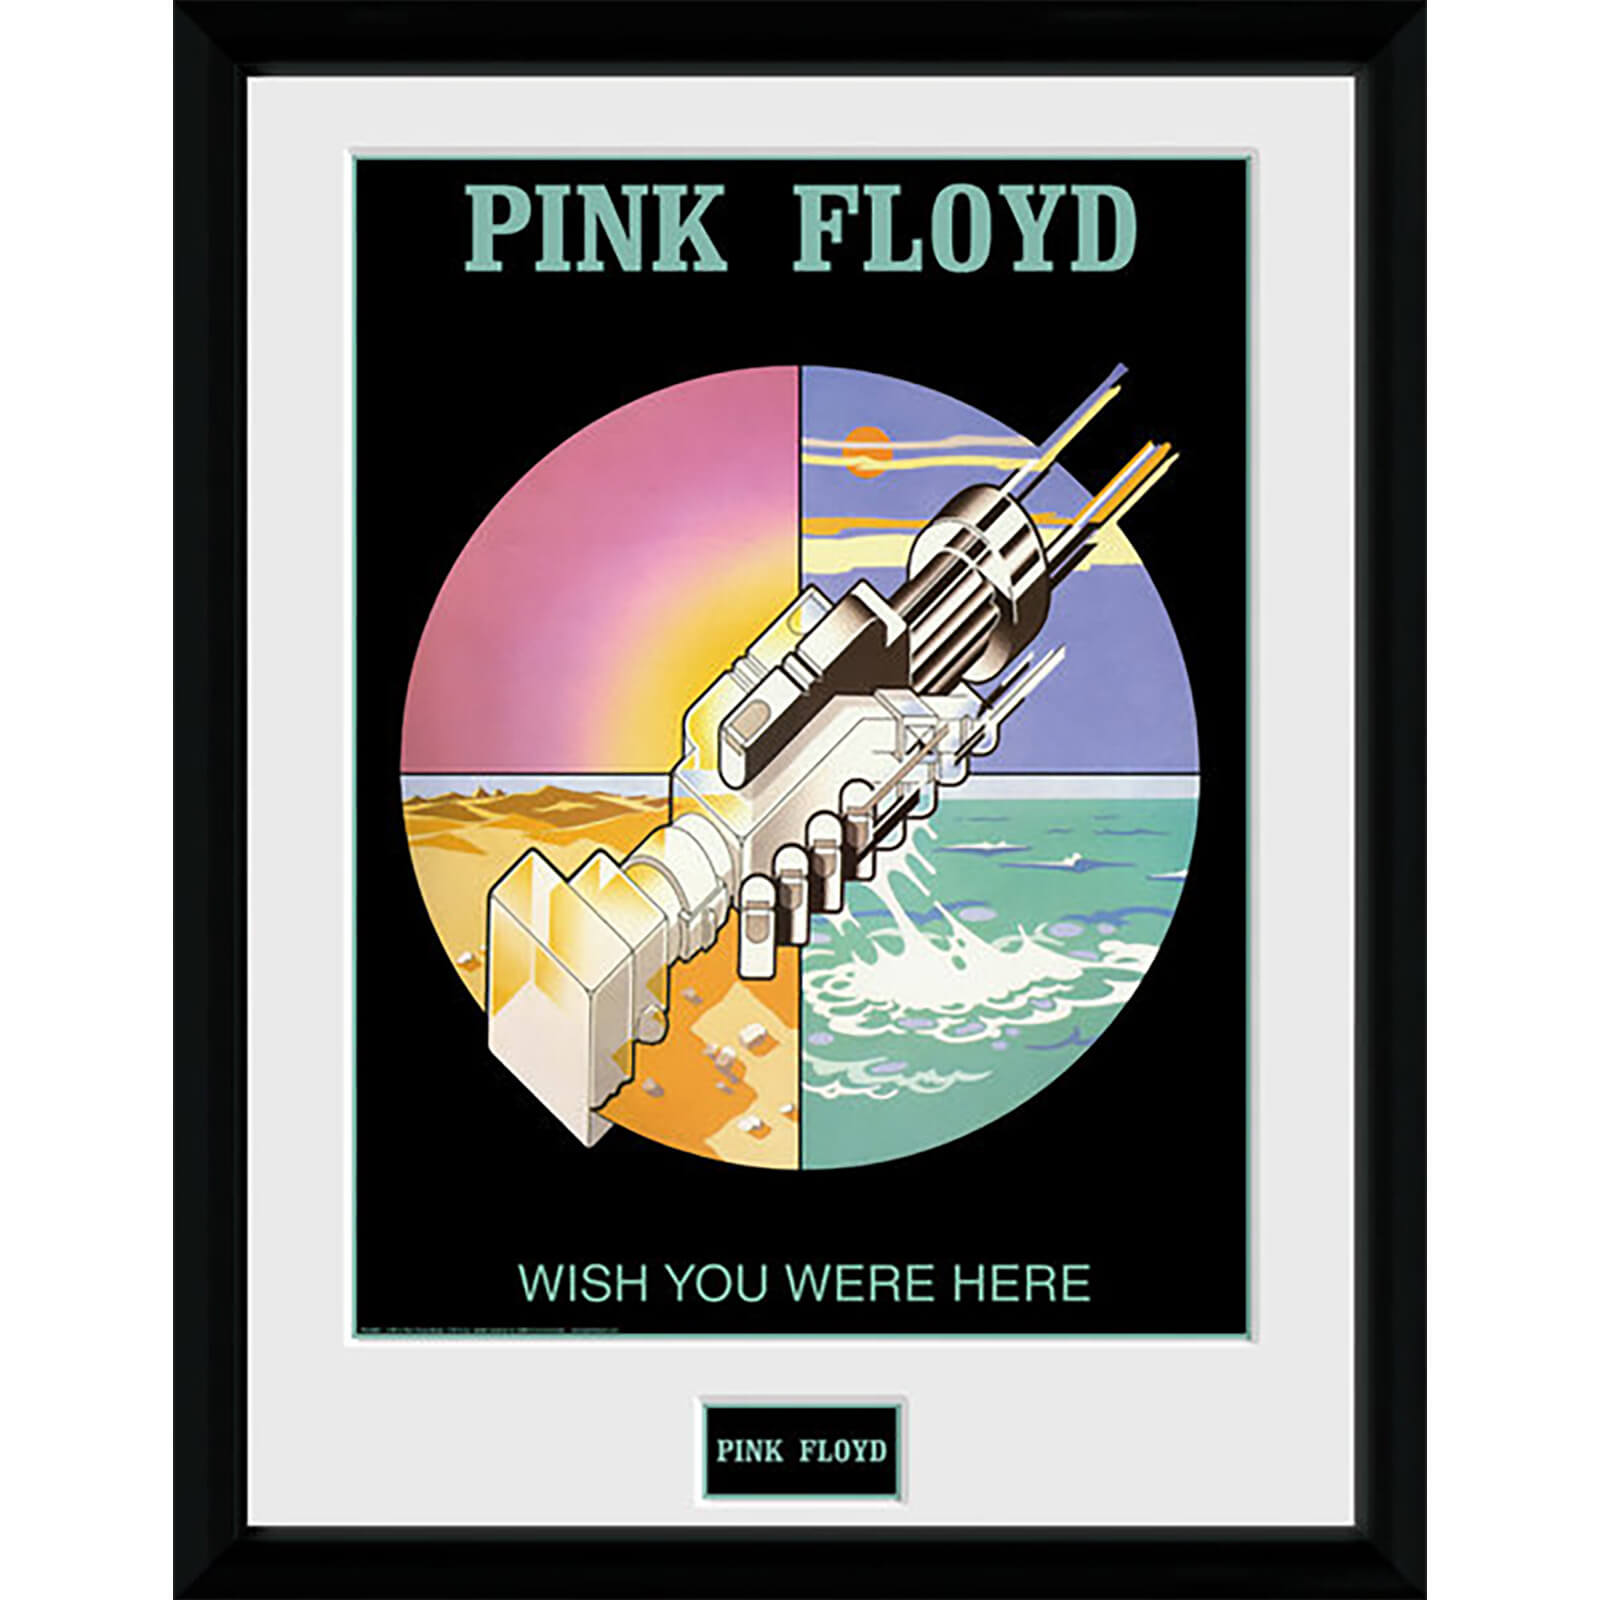 Pink Floyd Wish You Were Here 2 - 16 x 12 Inches Framed Photograph